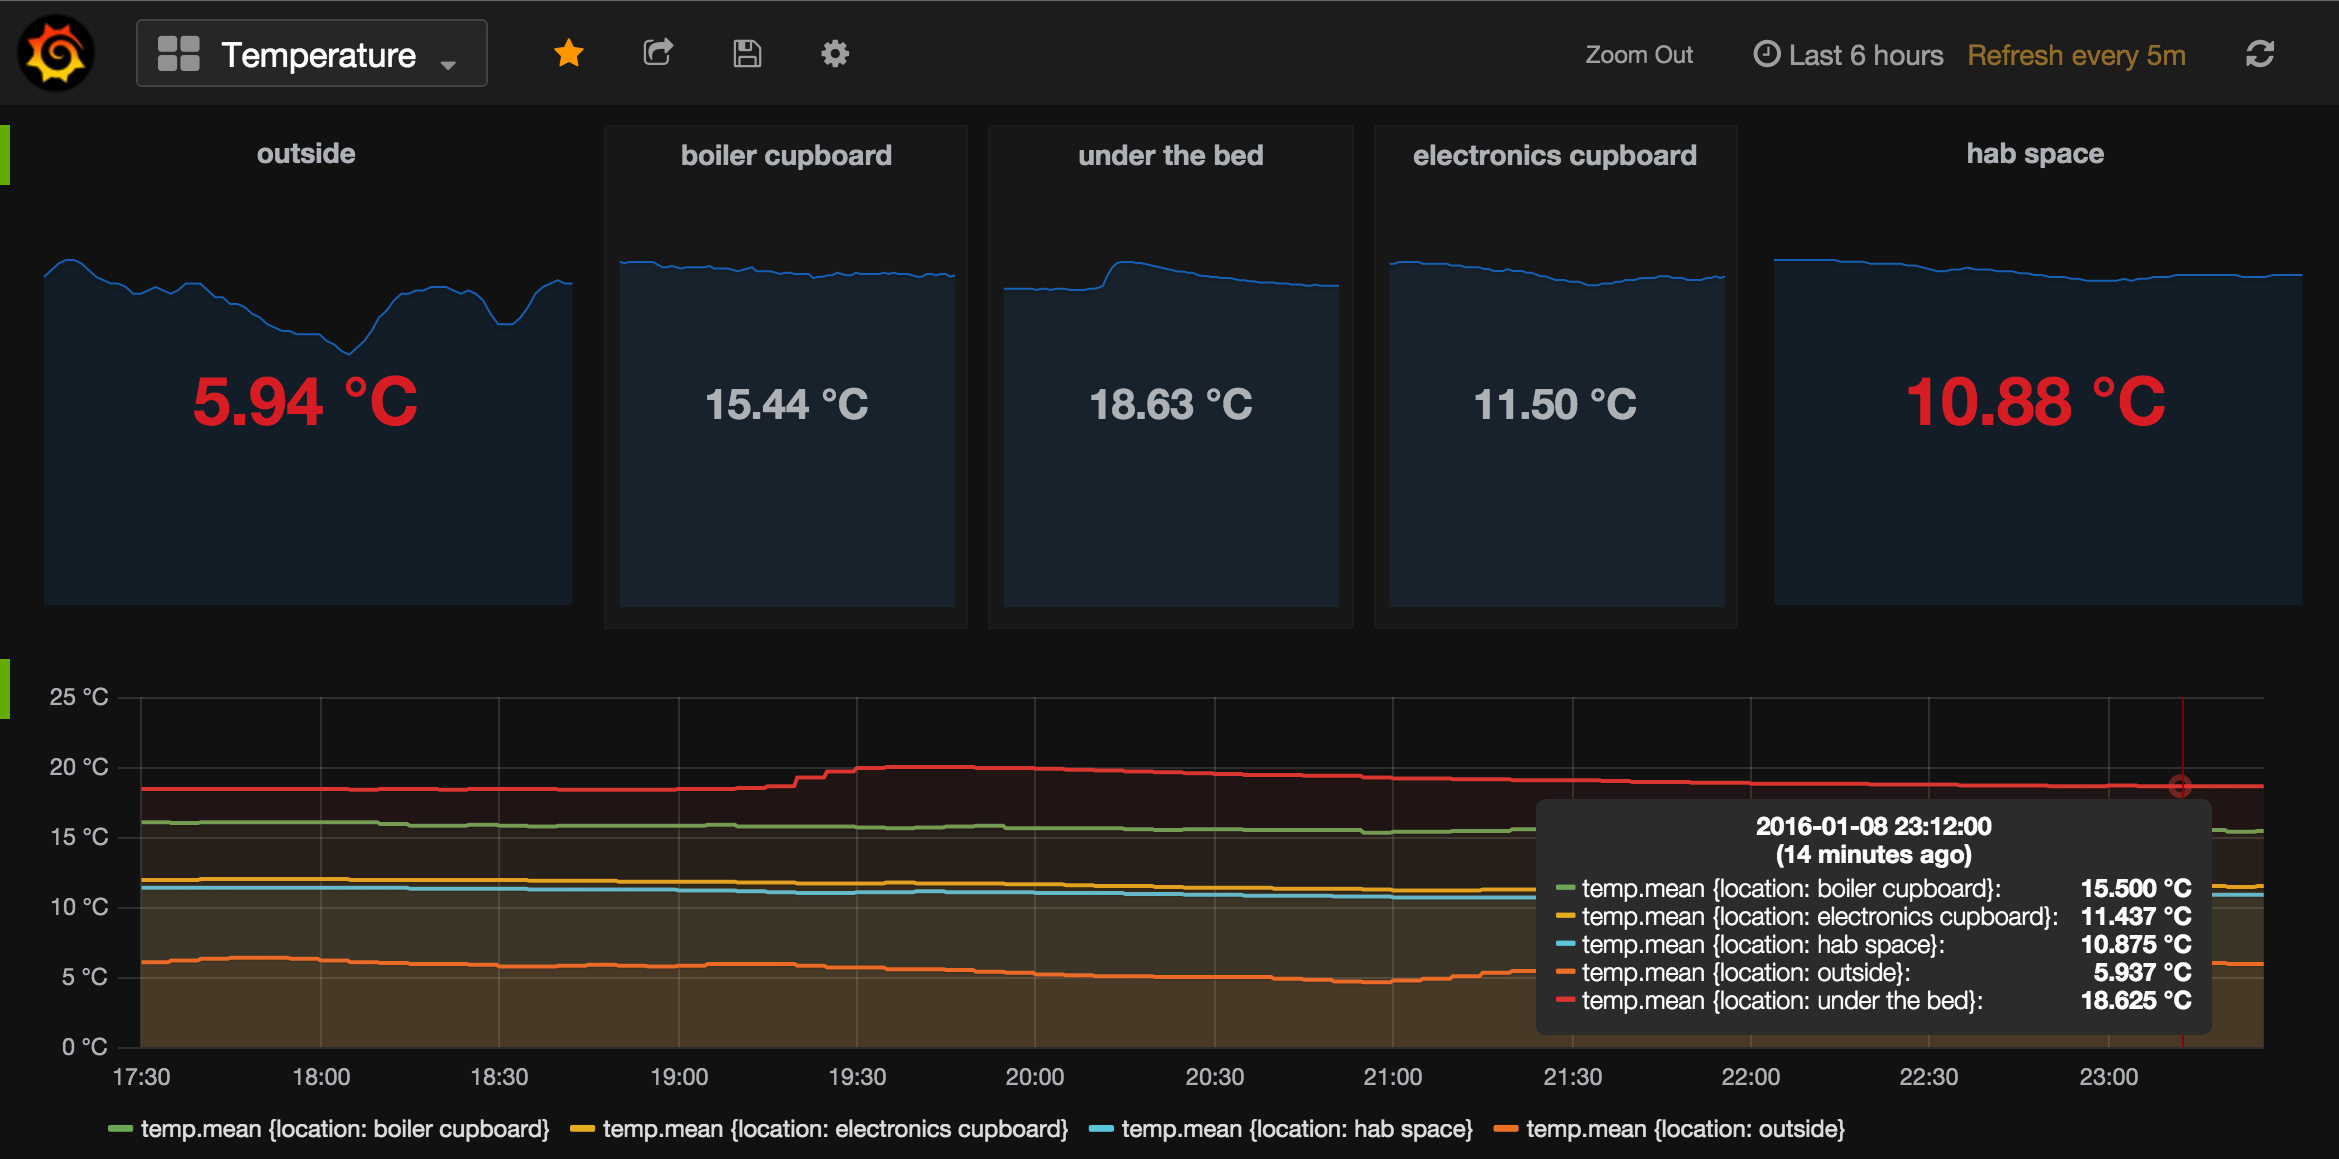 BeastCraft Grafana temperature dashboard